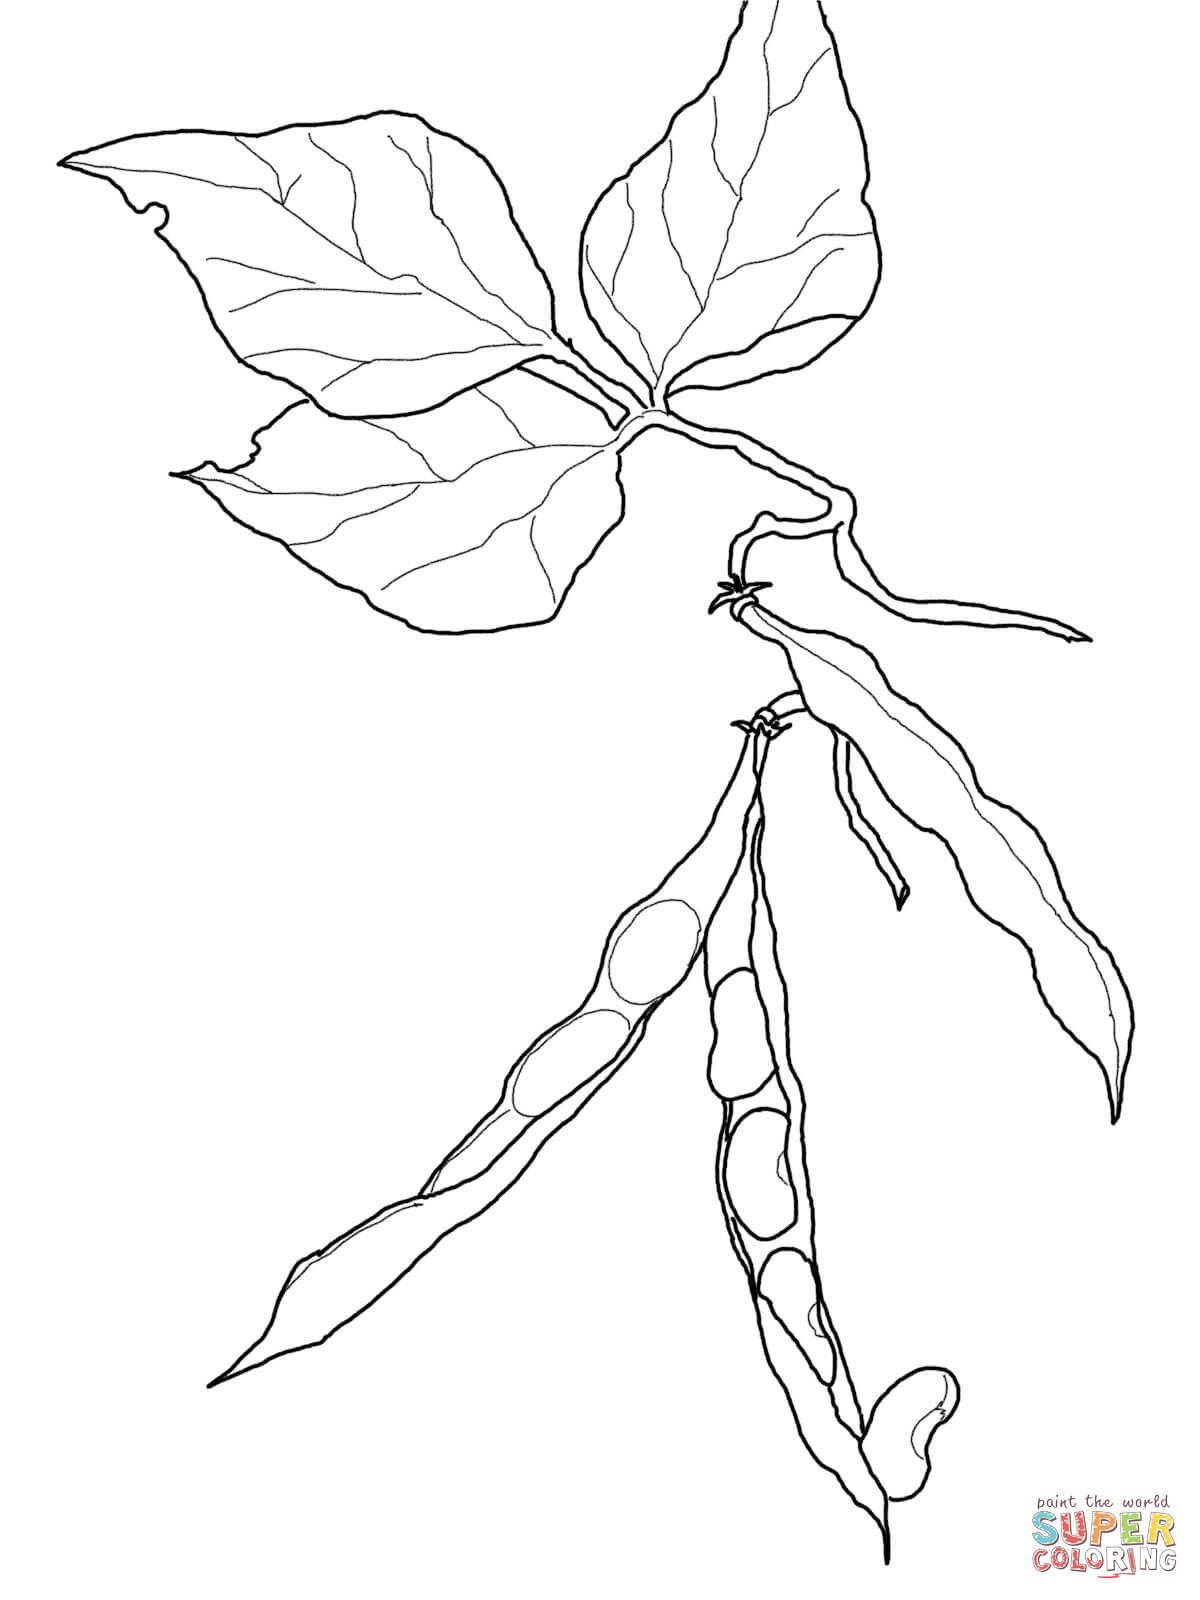 sprout coloring pages seed sprout coloring pages sprout coloring pages